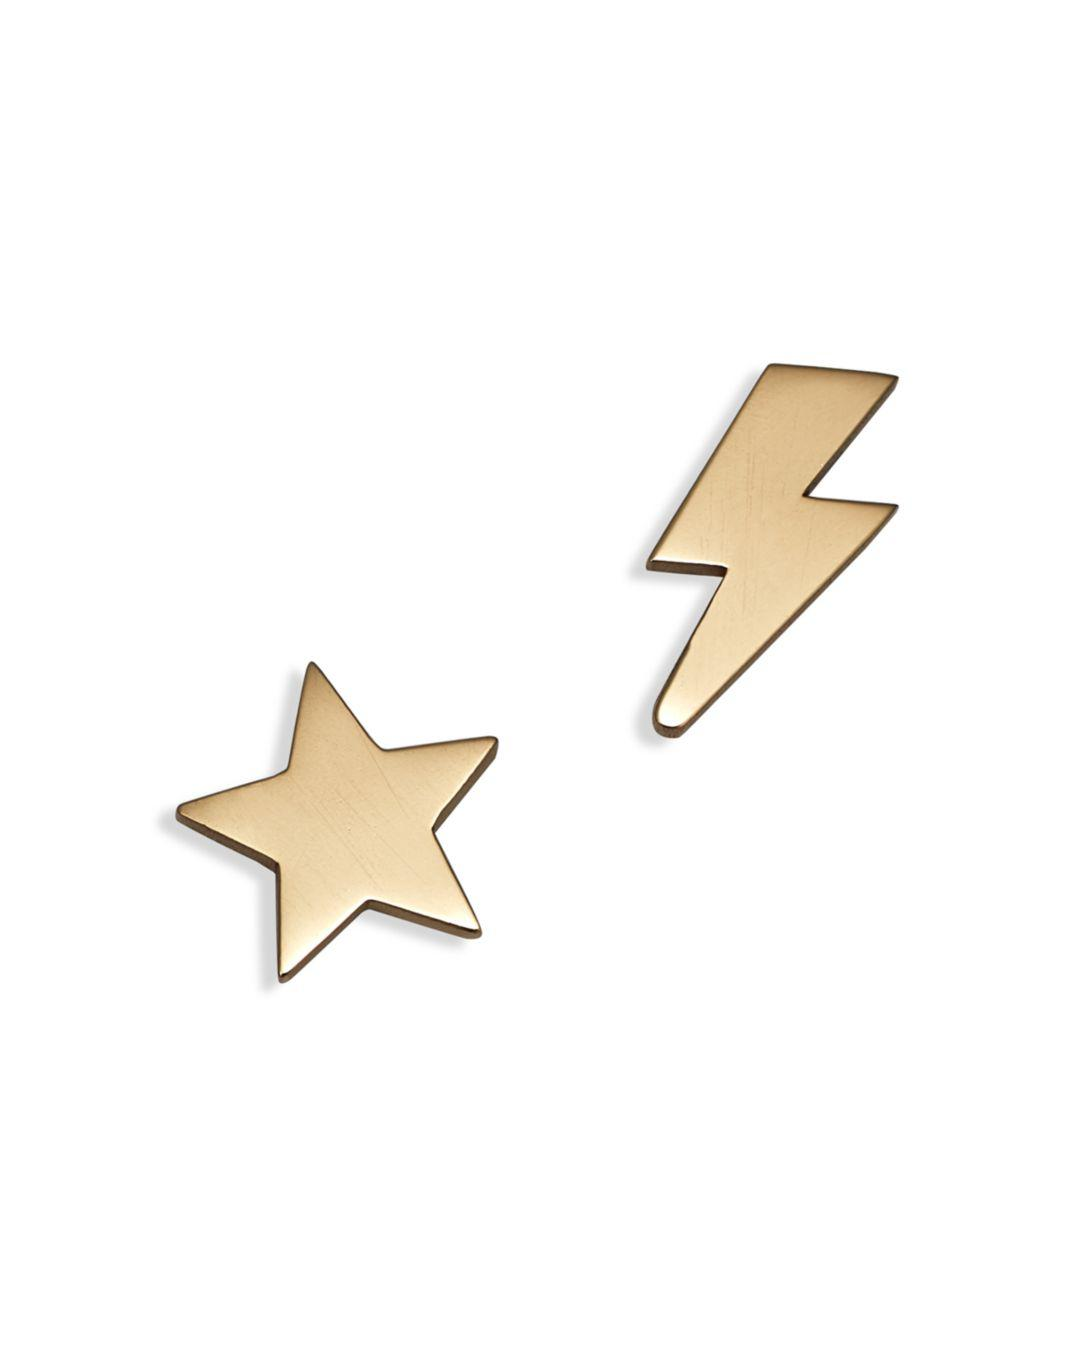 63a73a61f Zoe Chicco - Metallic 14k Yellow Gold Mixed Star & Lightning Bolt Stud  Earrings - Lyst. View fullscreen